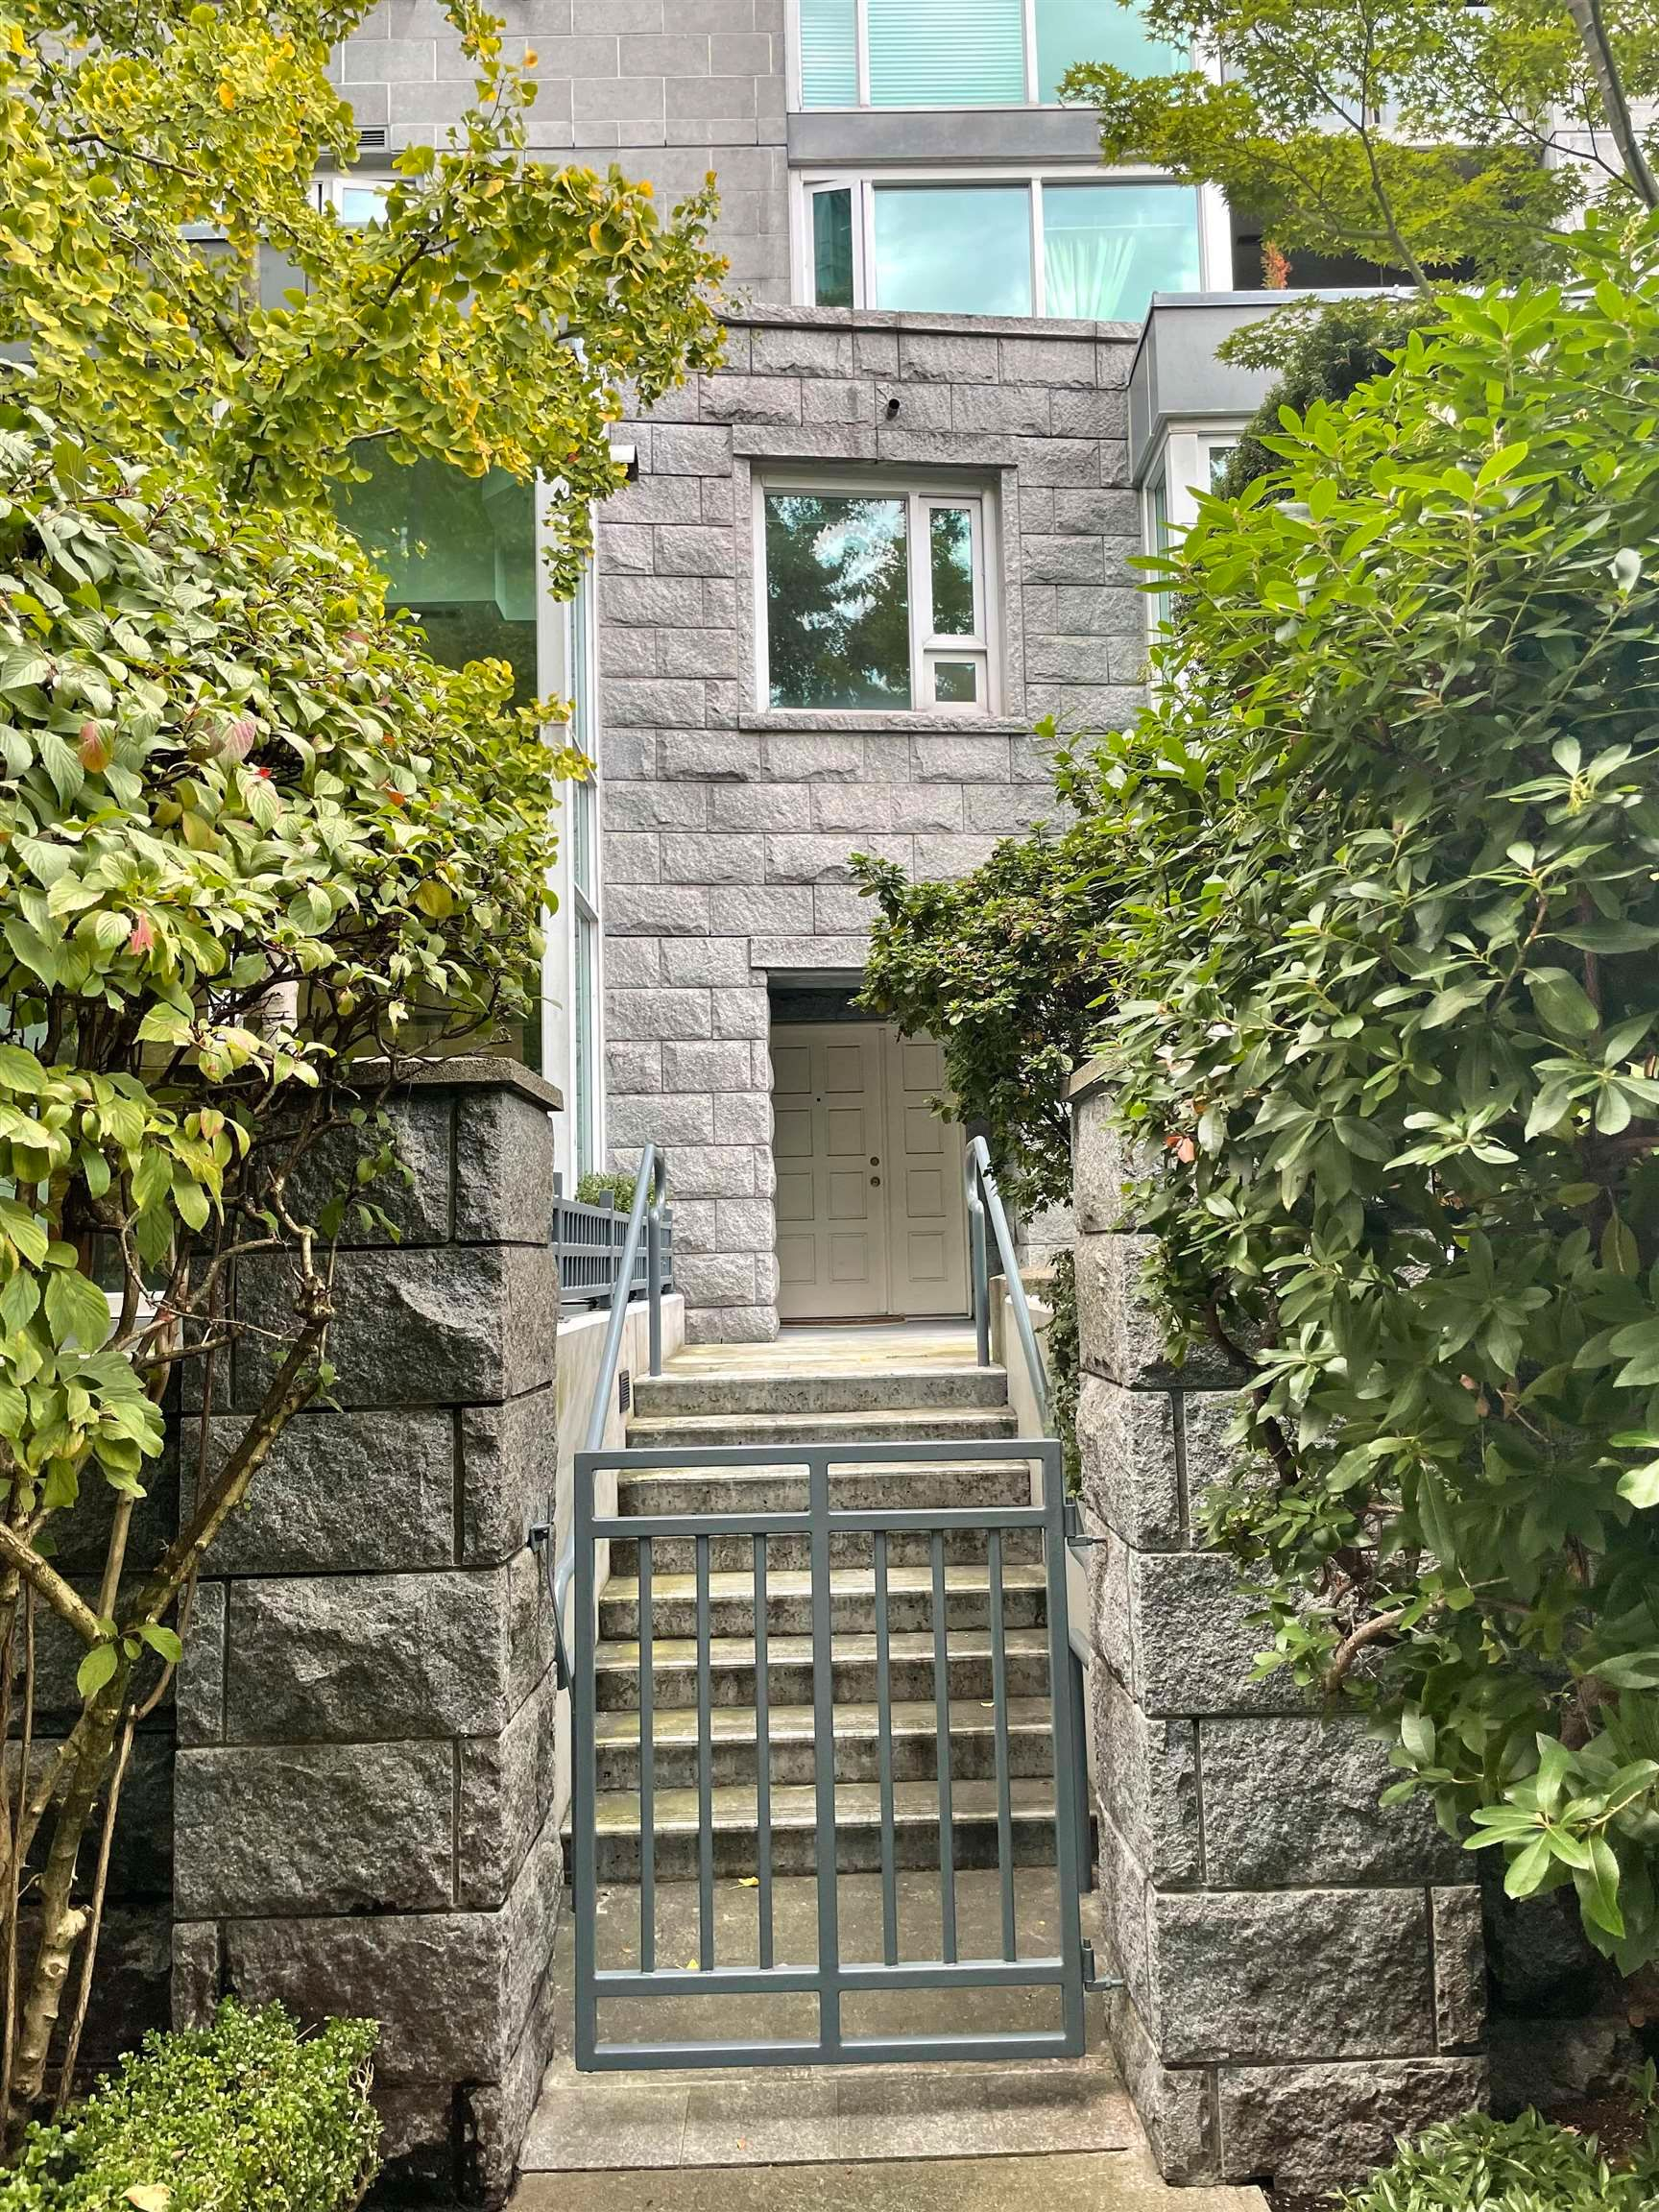 Main Photo: 505 NICOLA Street in Vancouver: Coal Harbour Townhouse for sale (Vancouver West)  : MLS®# R2625335